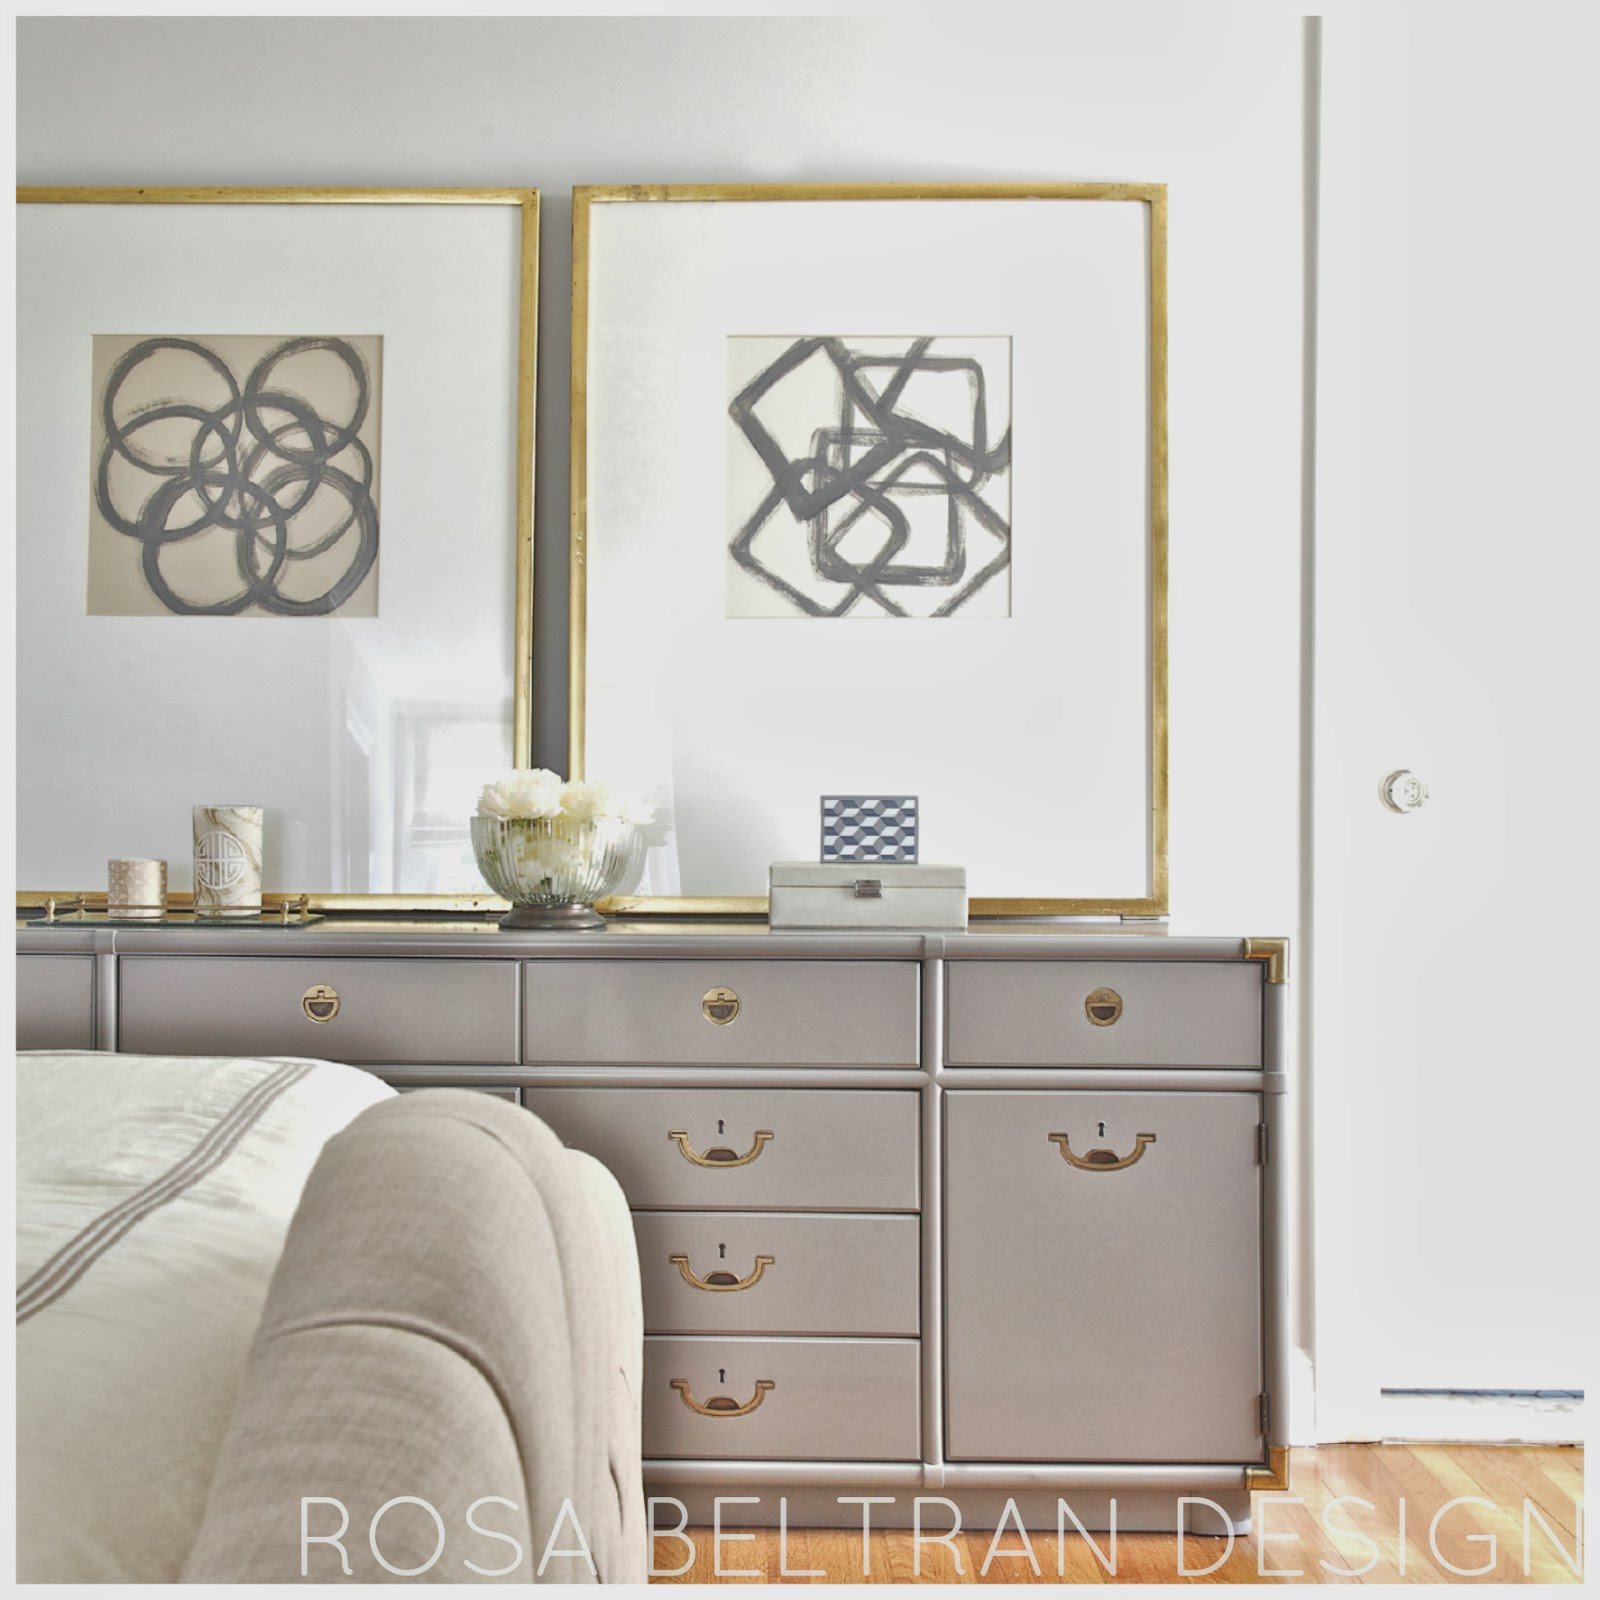 rosa beltran design diy wall art series modern abstracts. Black Bedroom Furniture Sets. Home Design Ideas